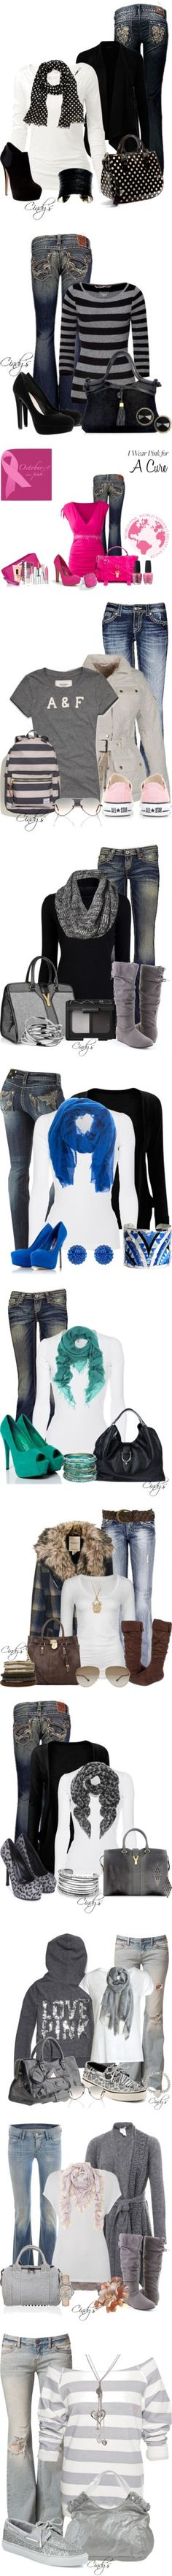 love most of the outfits......casual jeans, scarves and more ♥✤